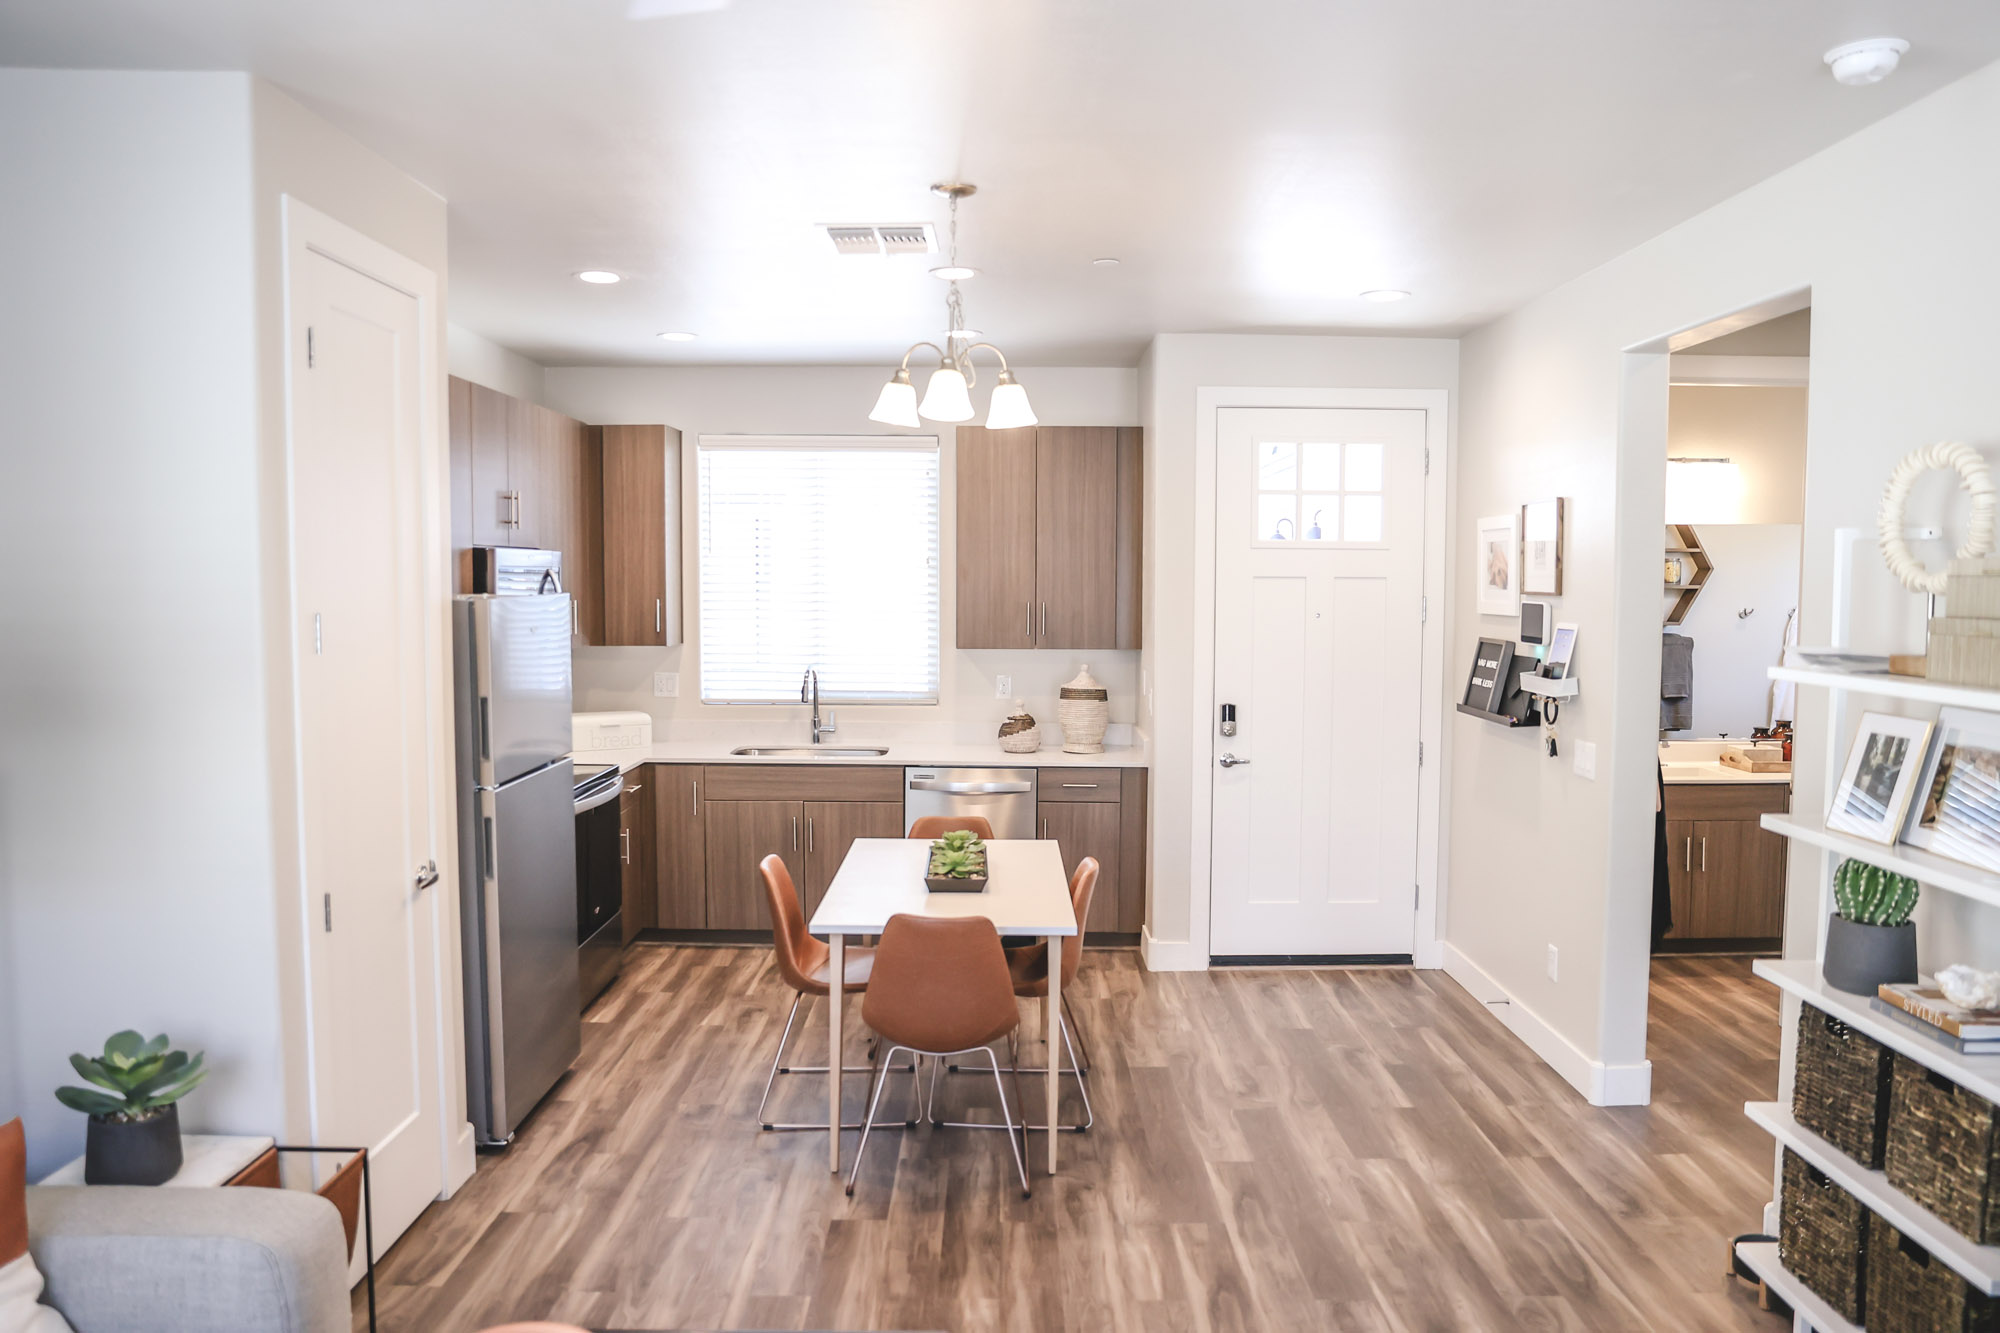 Modern Finishes and Appliances at Olive Marketplace Apartments in Glendale, AZ